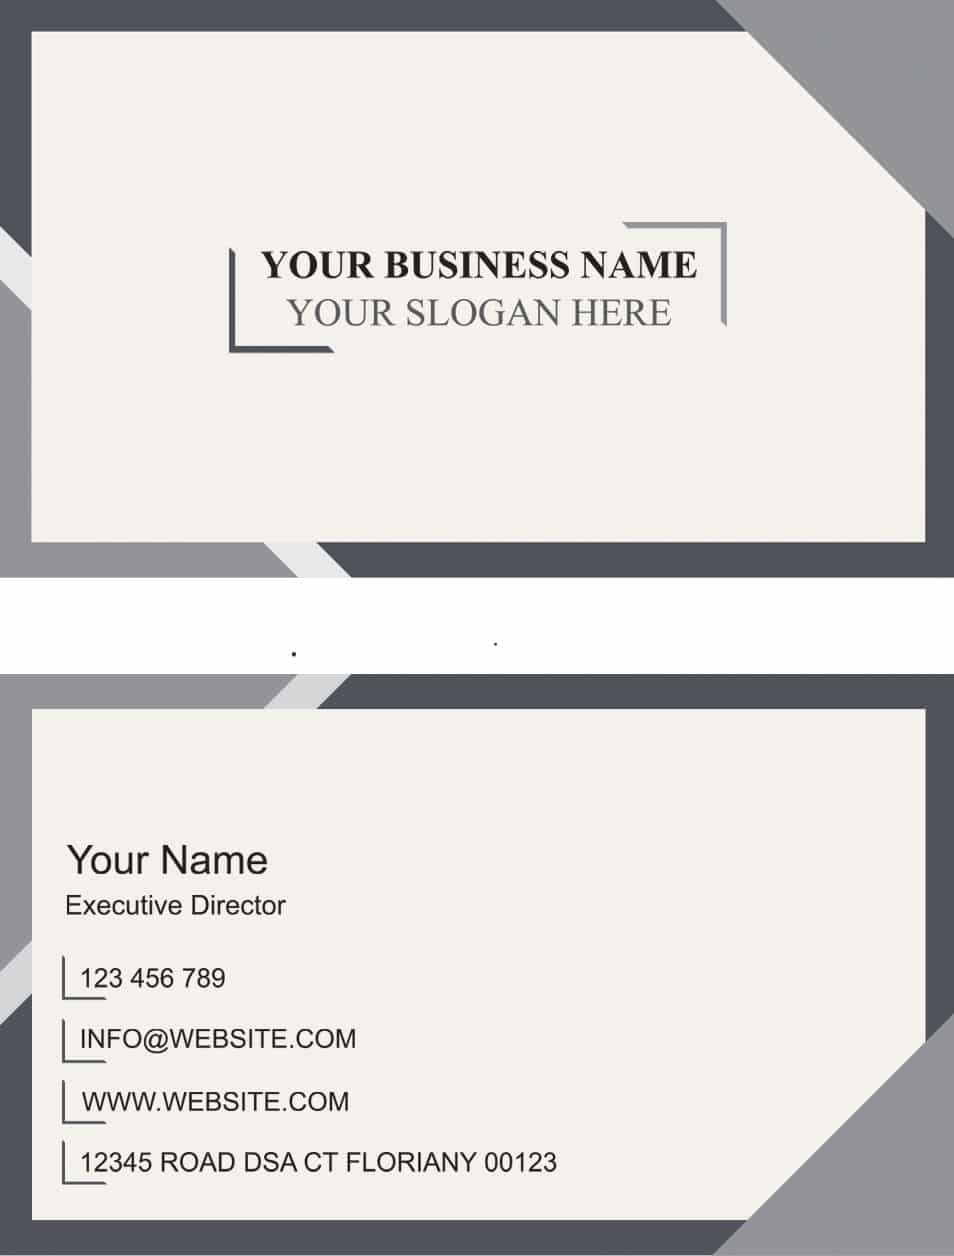 Html2014: 100+ Free Business Cards PSD